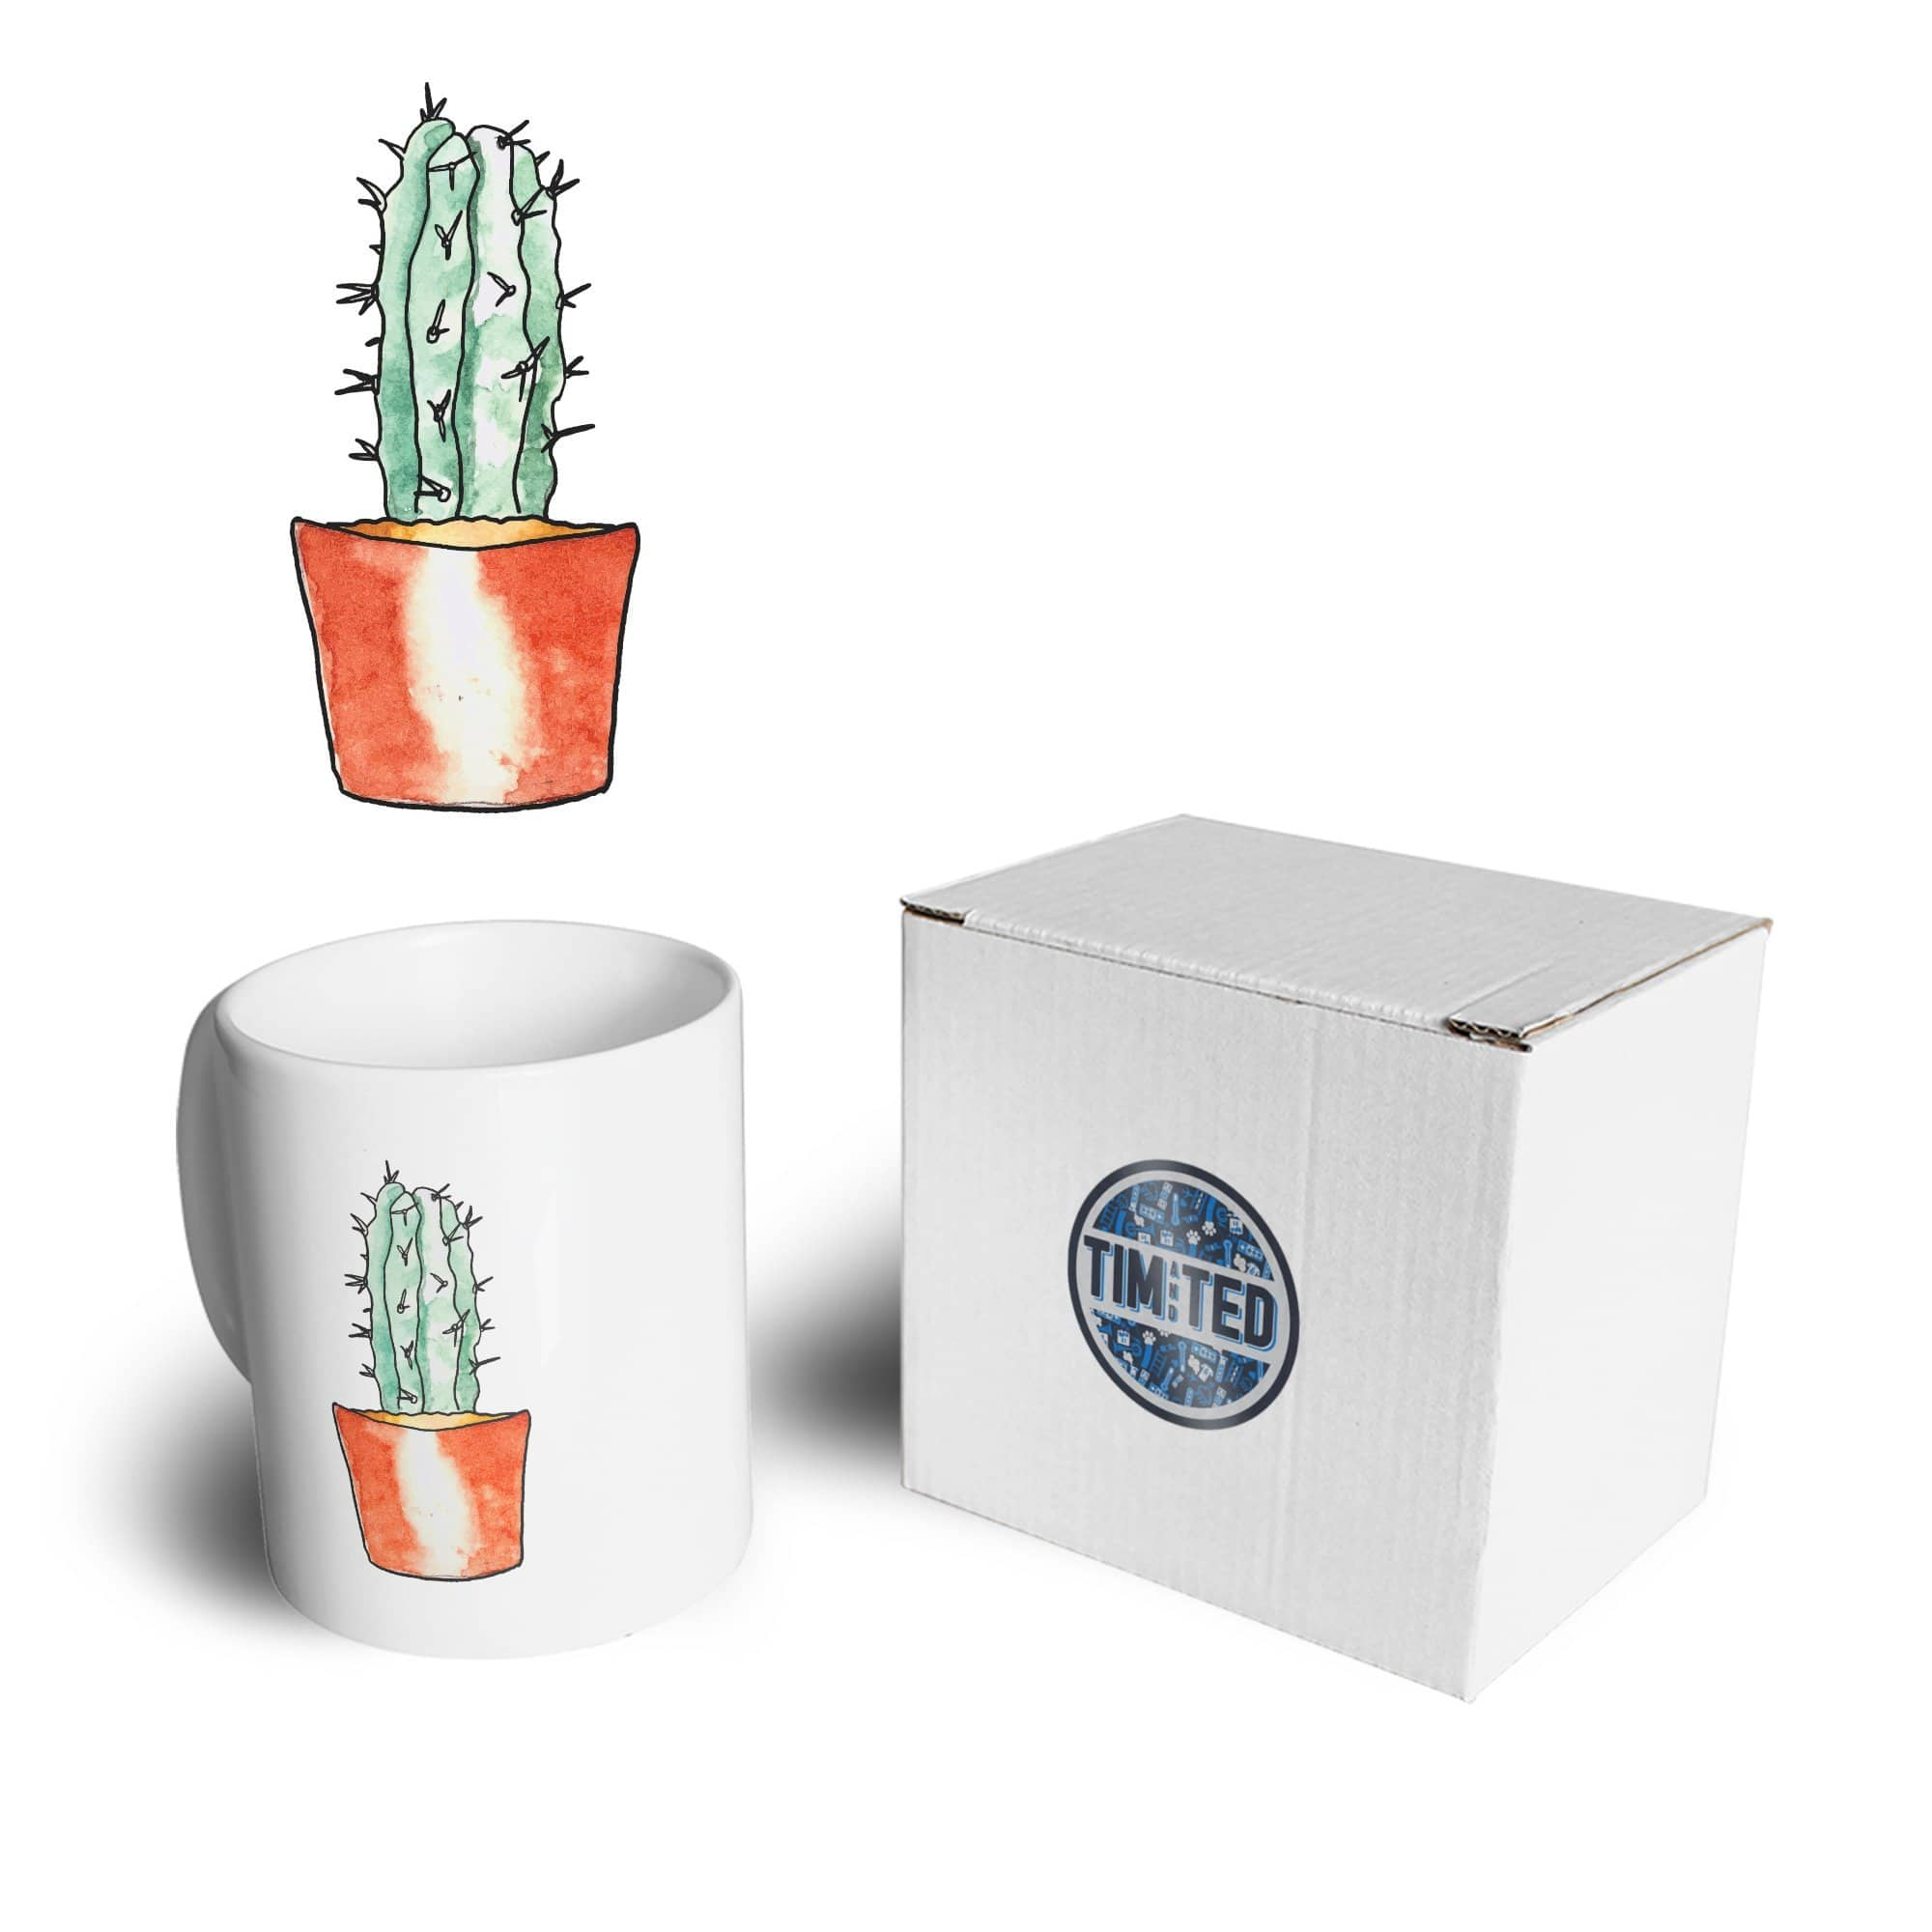 Cute Plant Mug Drawn Cactus Art Pocket Print Coffee Tea Cup